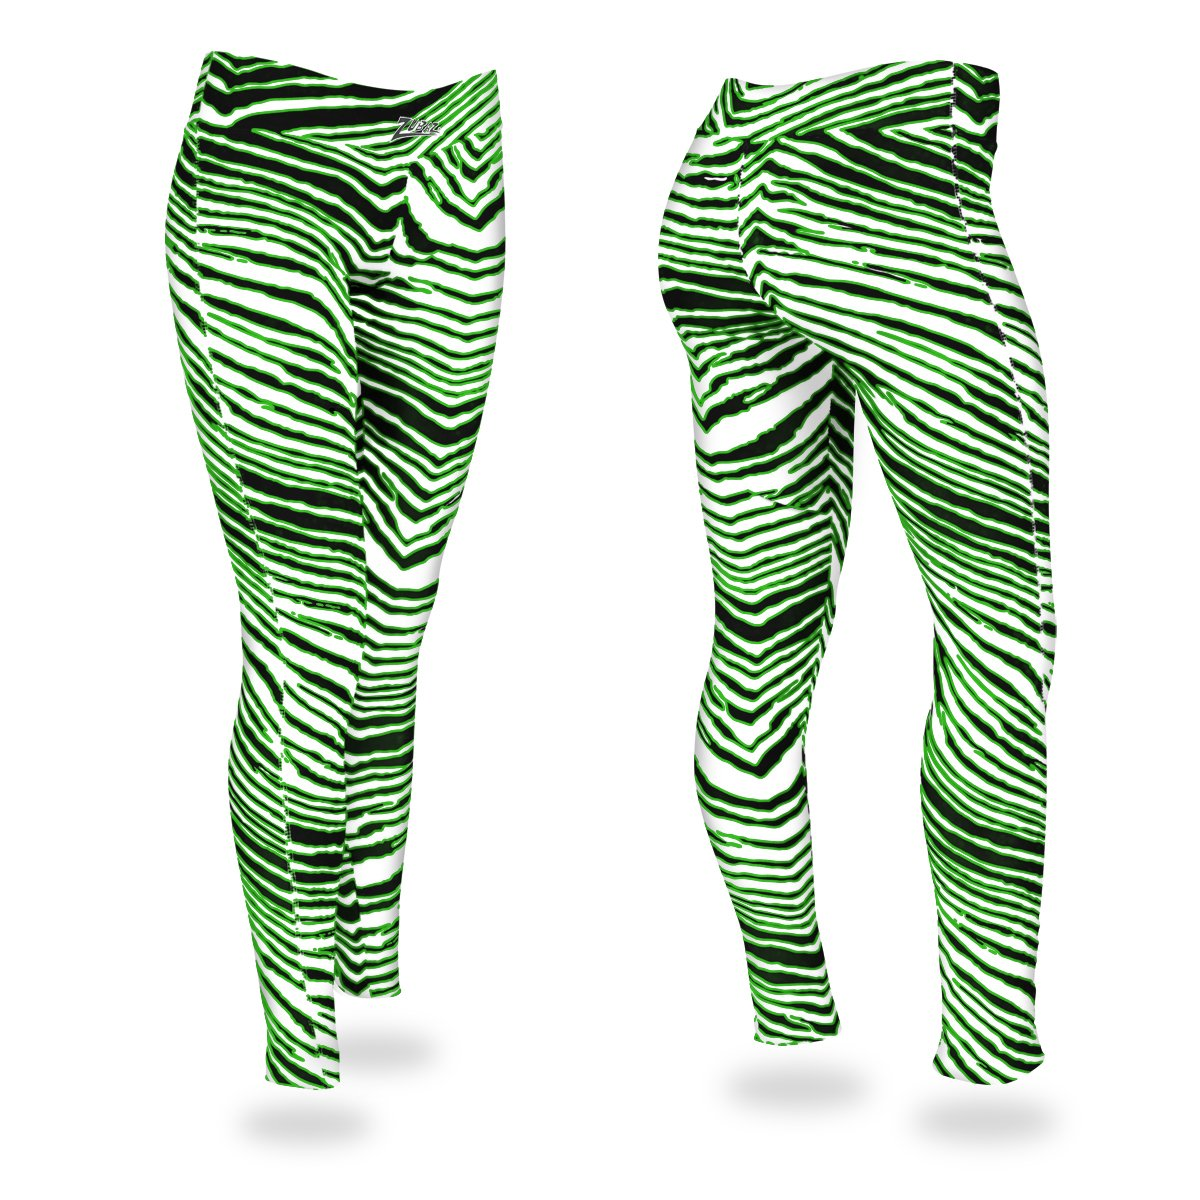 Zubaz Zebra Print Slim Fit Trousers For Ladies-NA9254